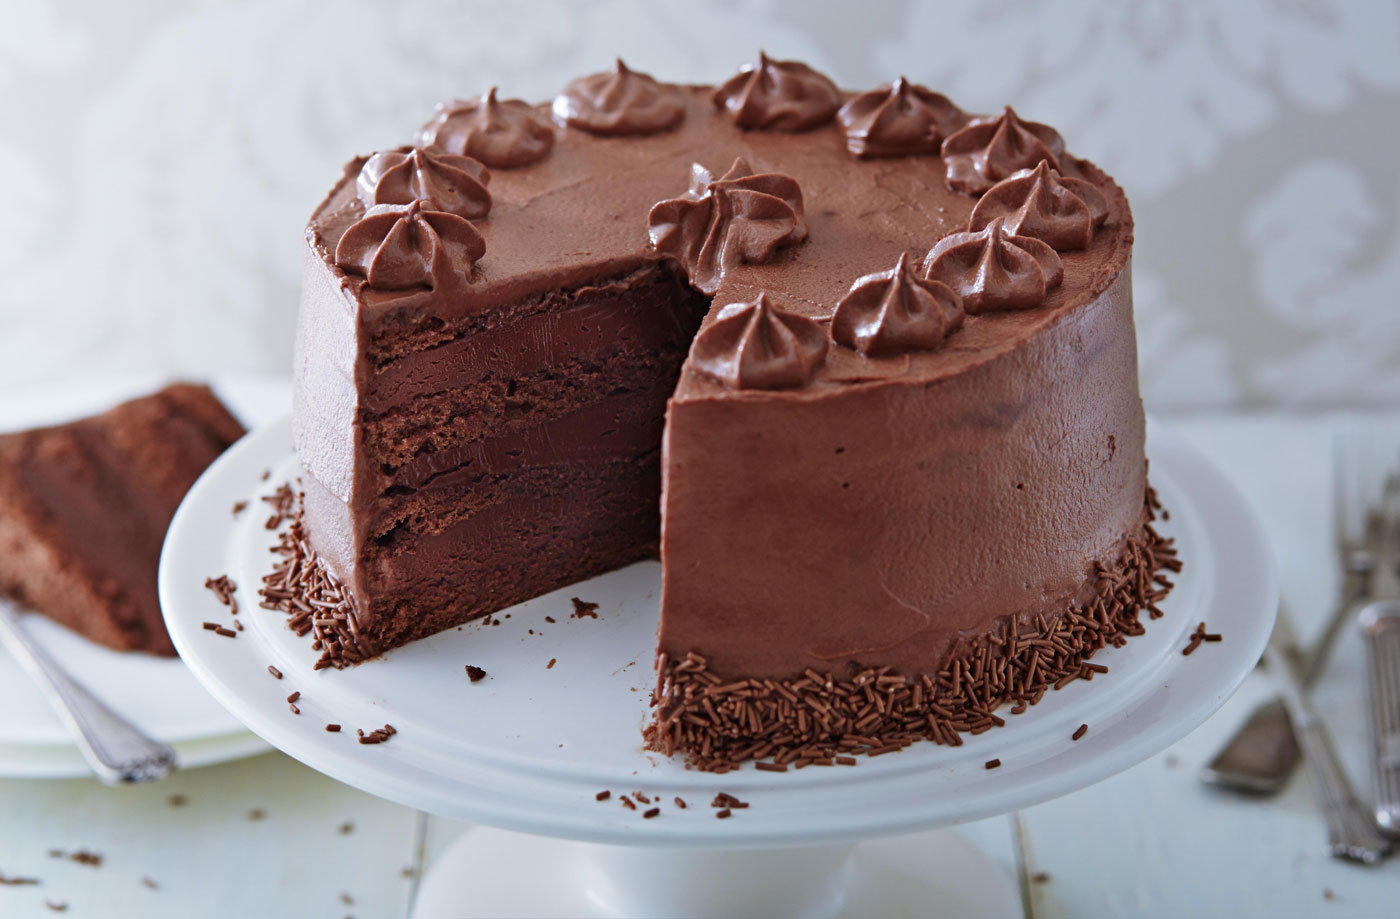 Hersheys Chocolate Cake Recipe